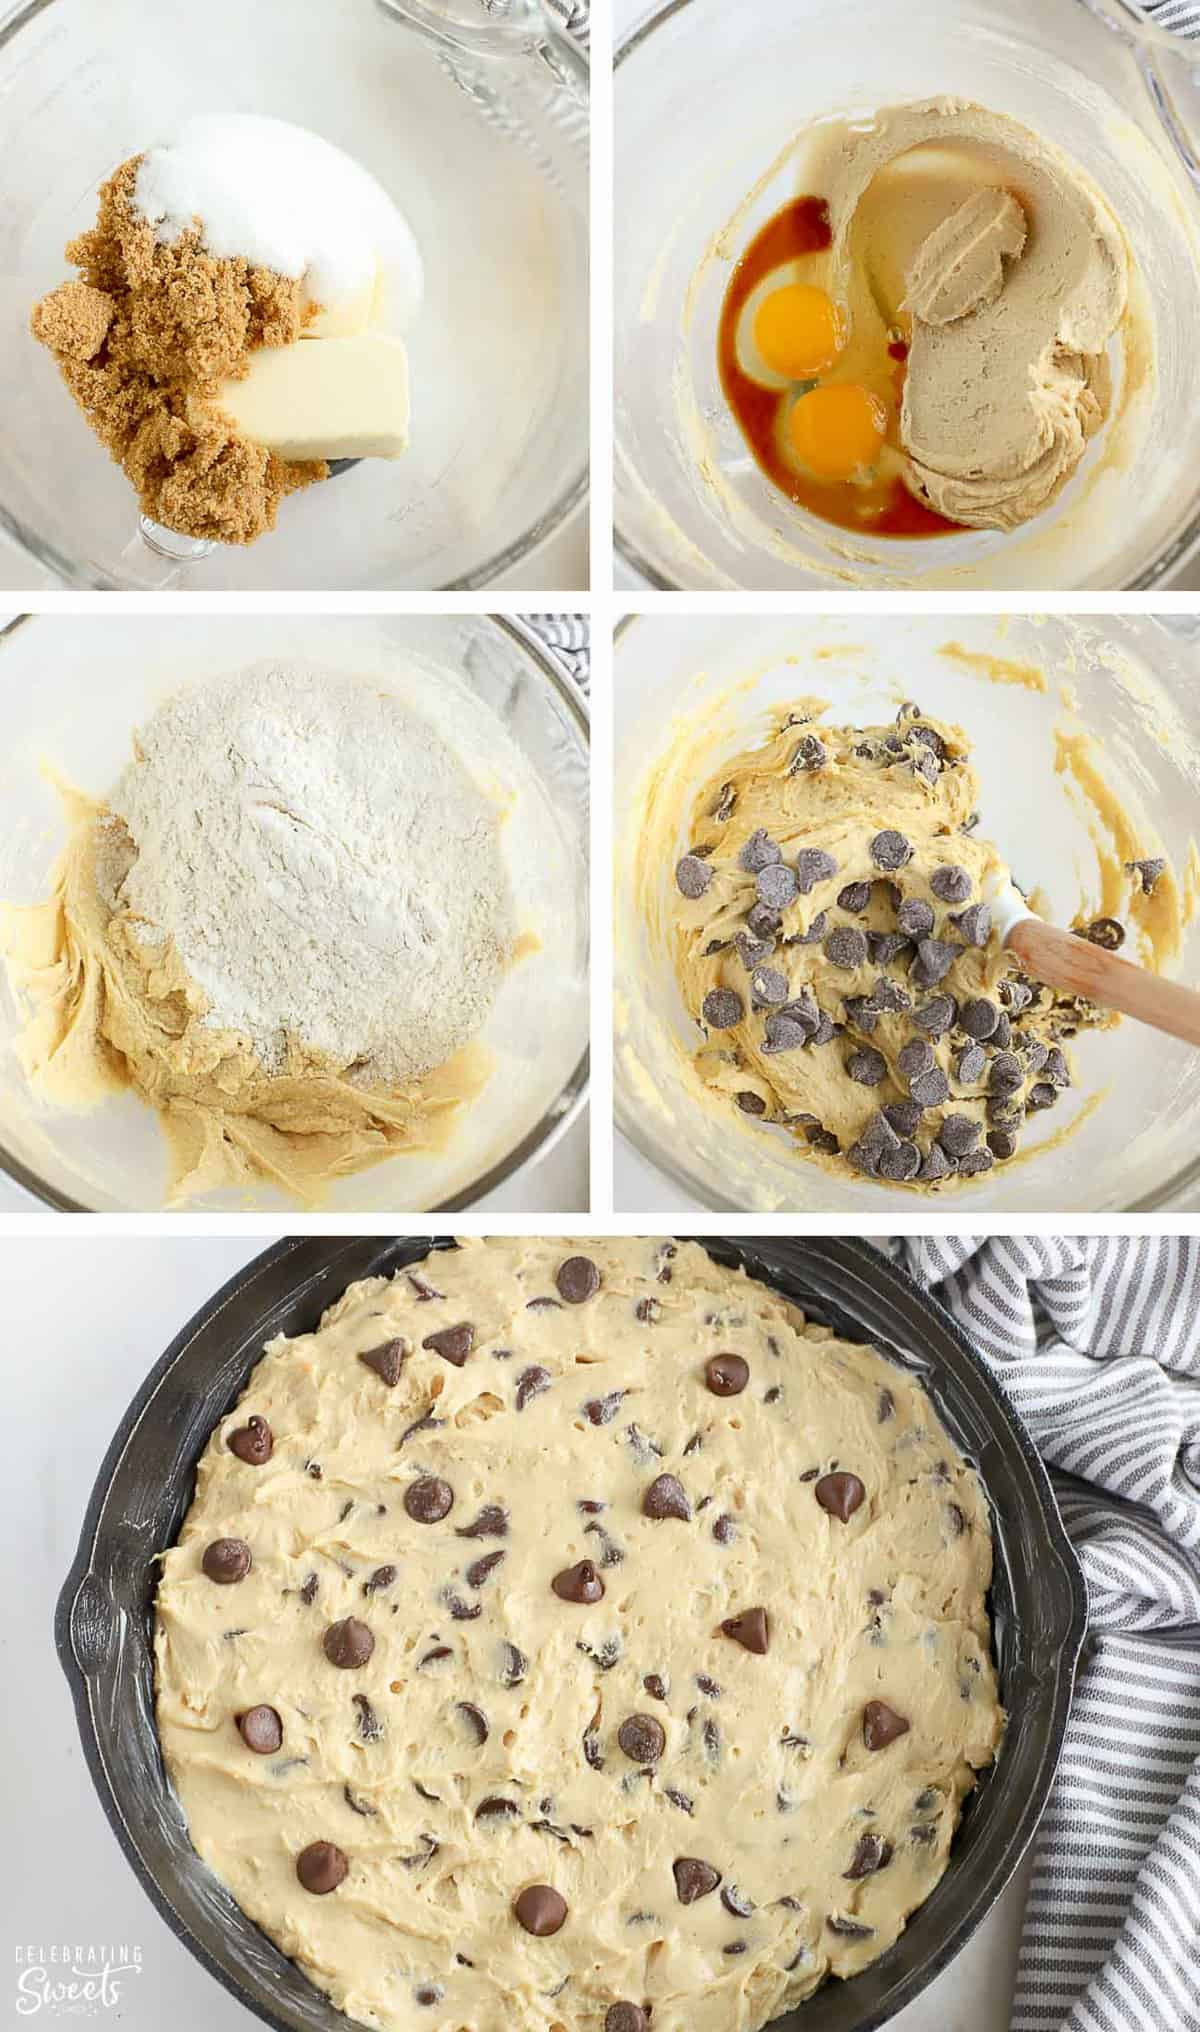 Skillet cookie dough in a large bowl and pressed into a cast iron skillet.